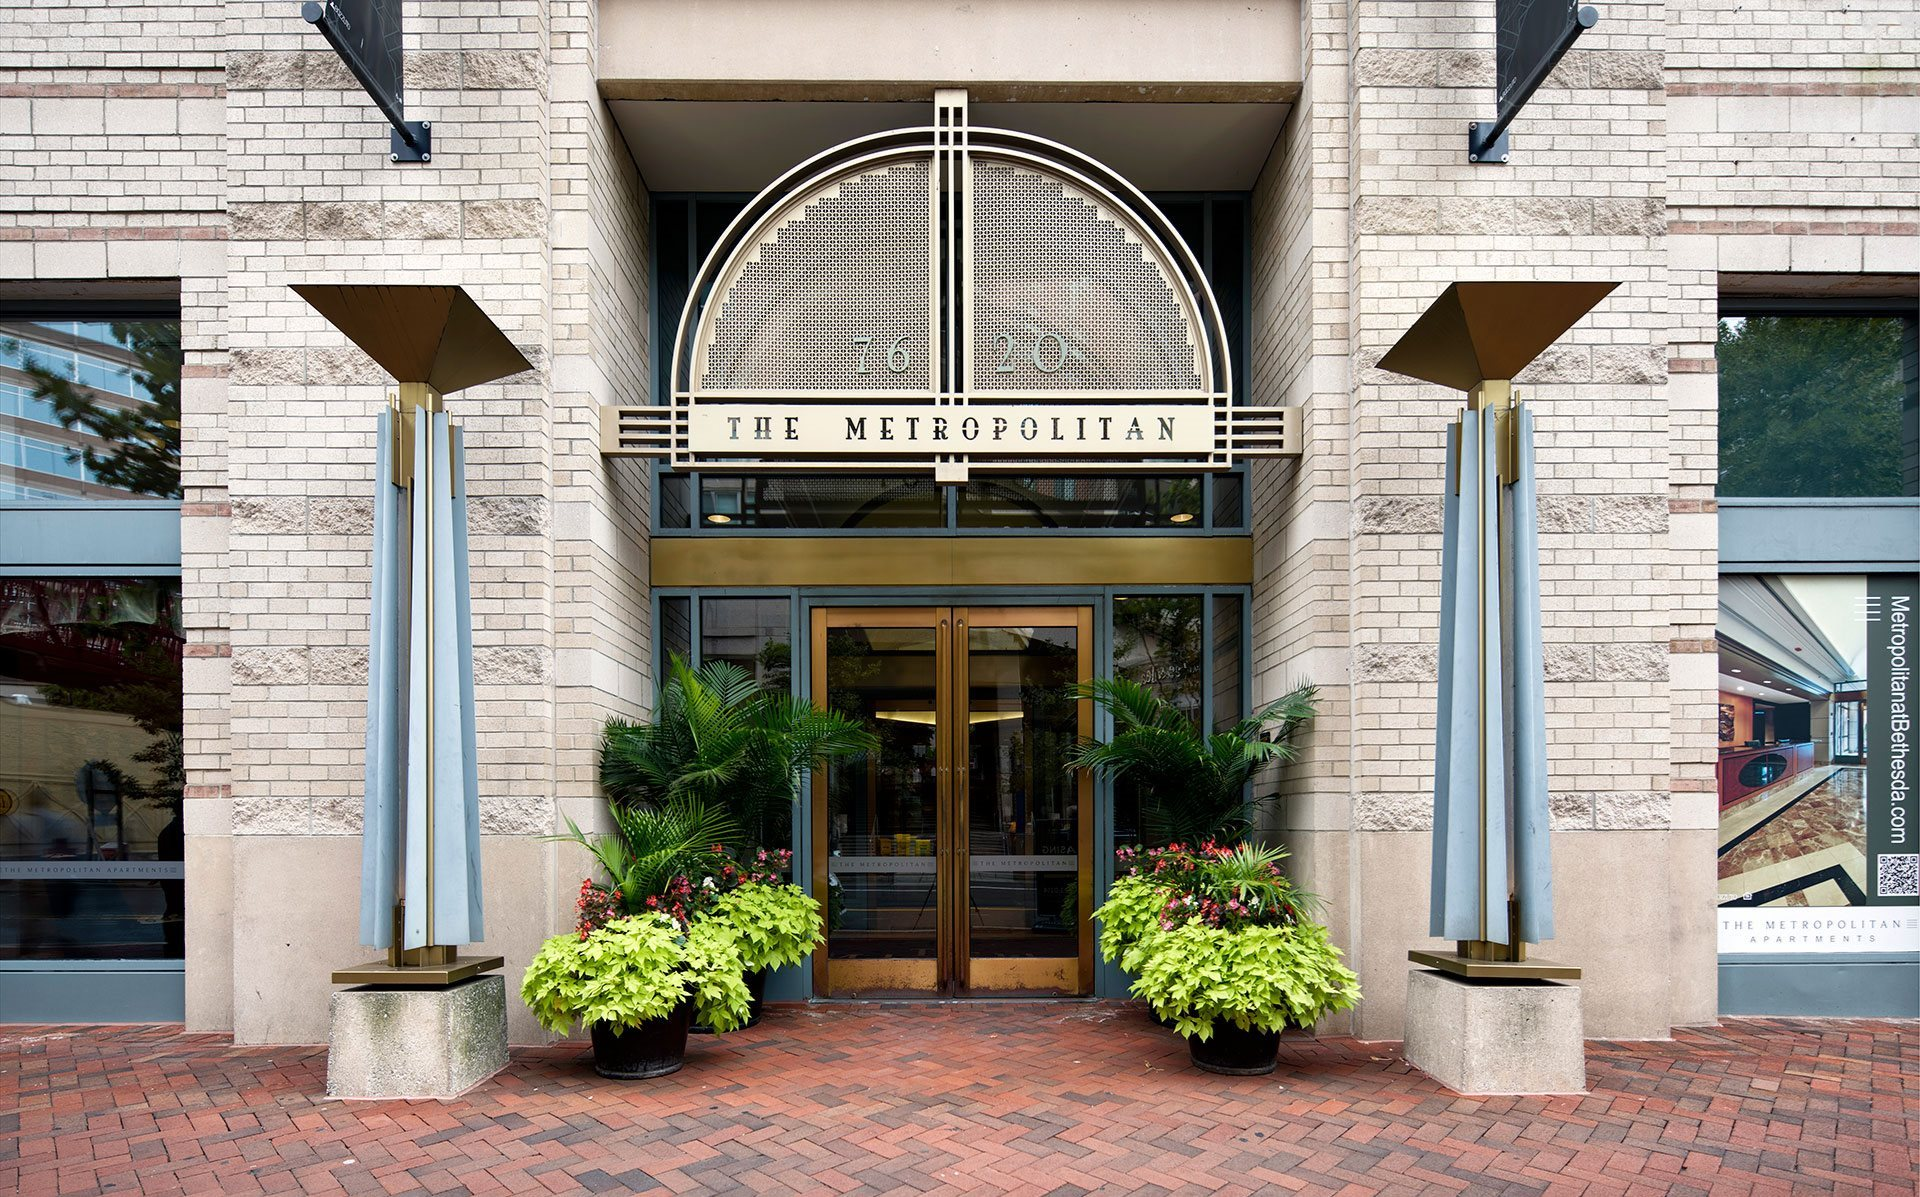 Front doors of The Metropolitan located at 7620 Old Georgetown Road, with brick entranceway and green plants.